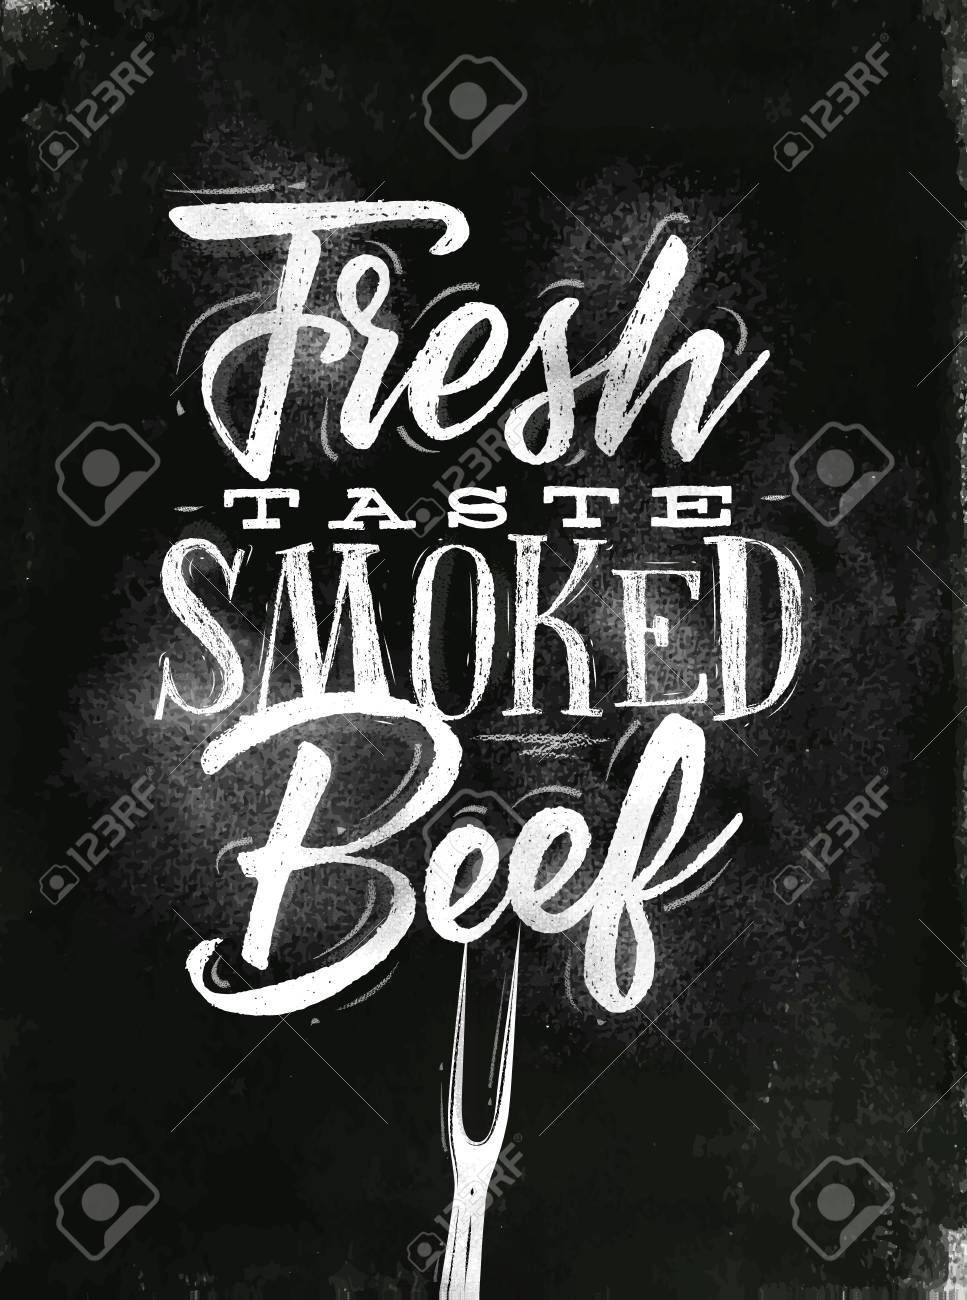 Poster Lettering Fresh Taste Smoked Beef Drawing In Vintage Style With Chalk On Chalkboard Background